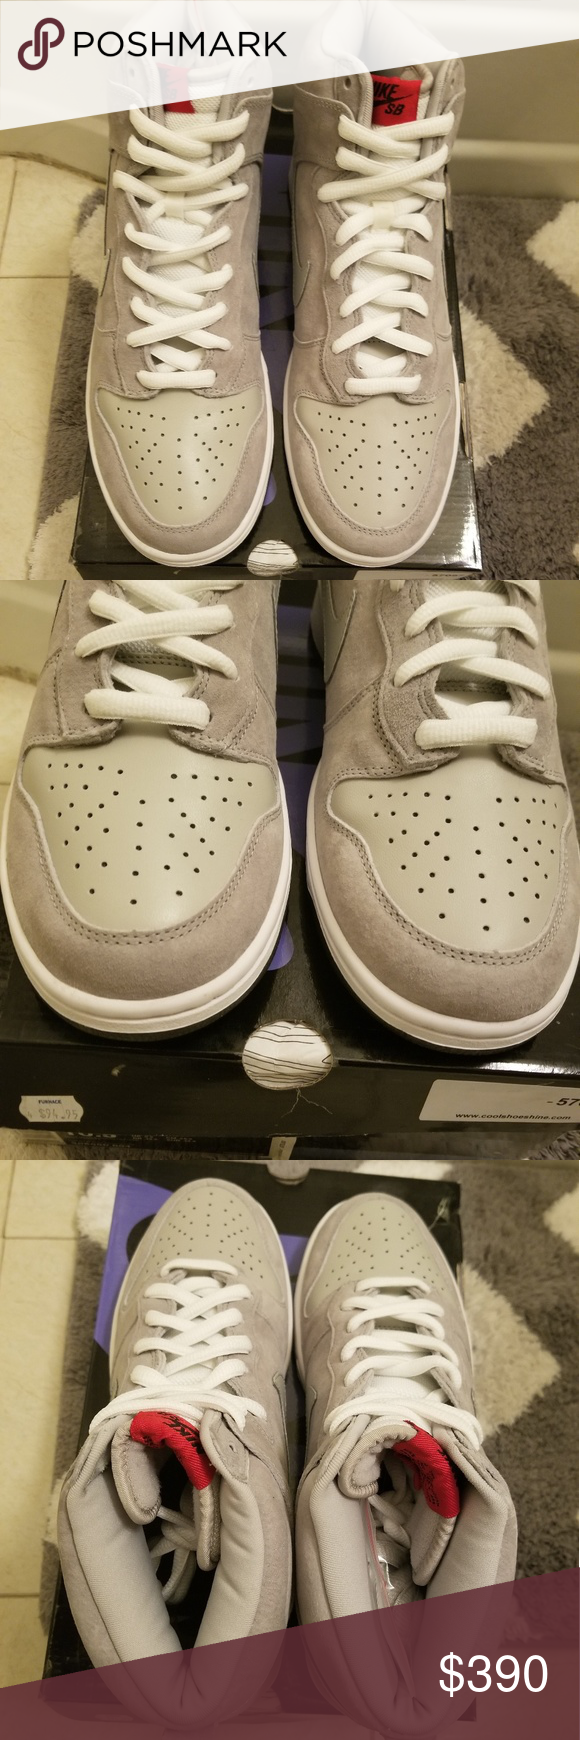 the latest 478be 5f63e Nike SB Dunk High Pee Wee Herman 10.5 NEW Brand new and ...